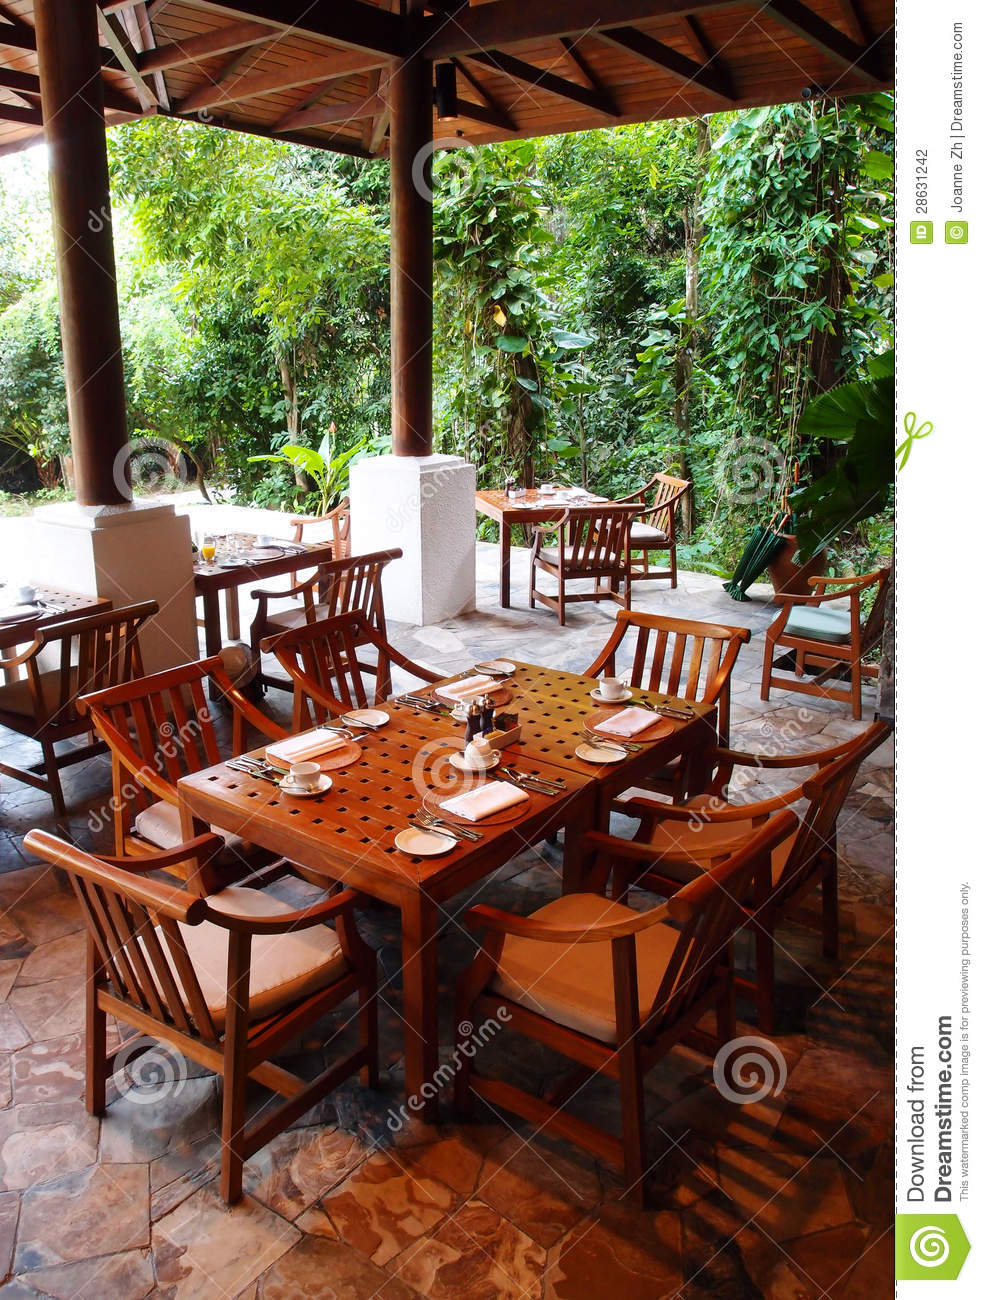 s stock photography outdoor dining restaurant nature surroundings